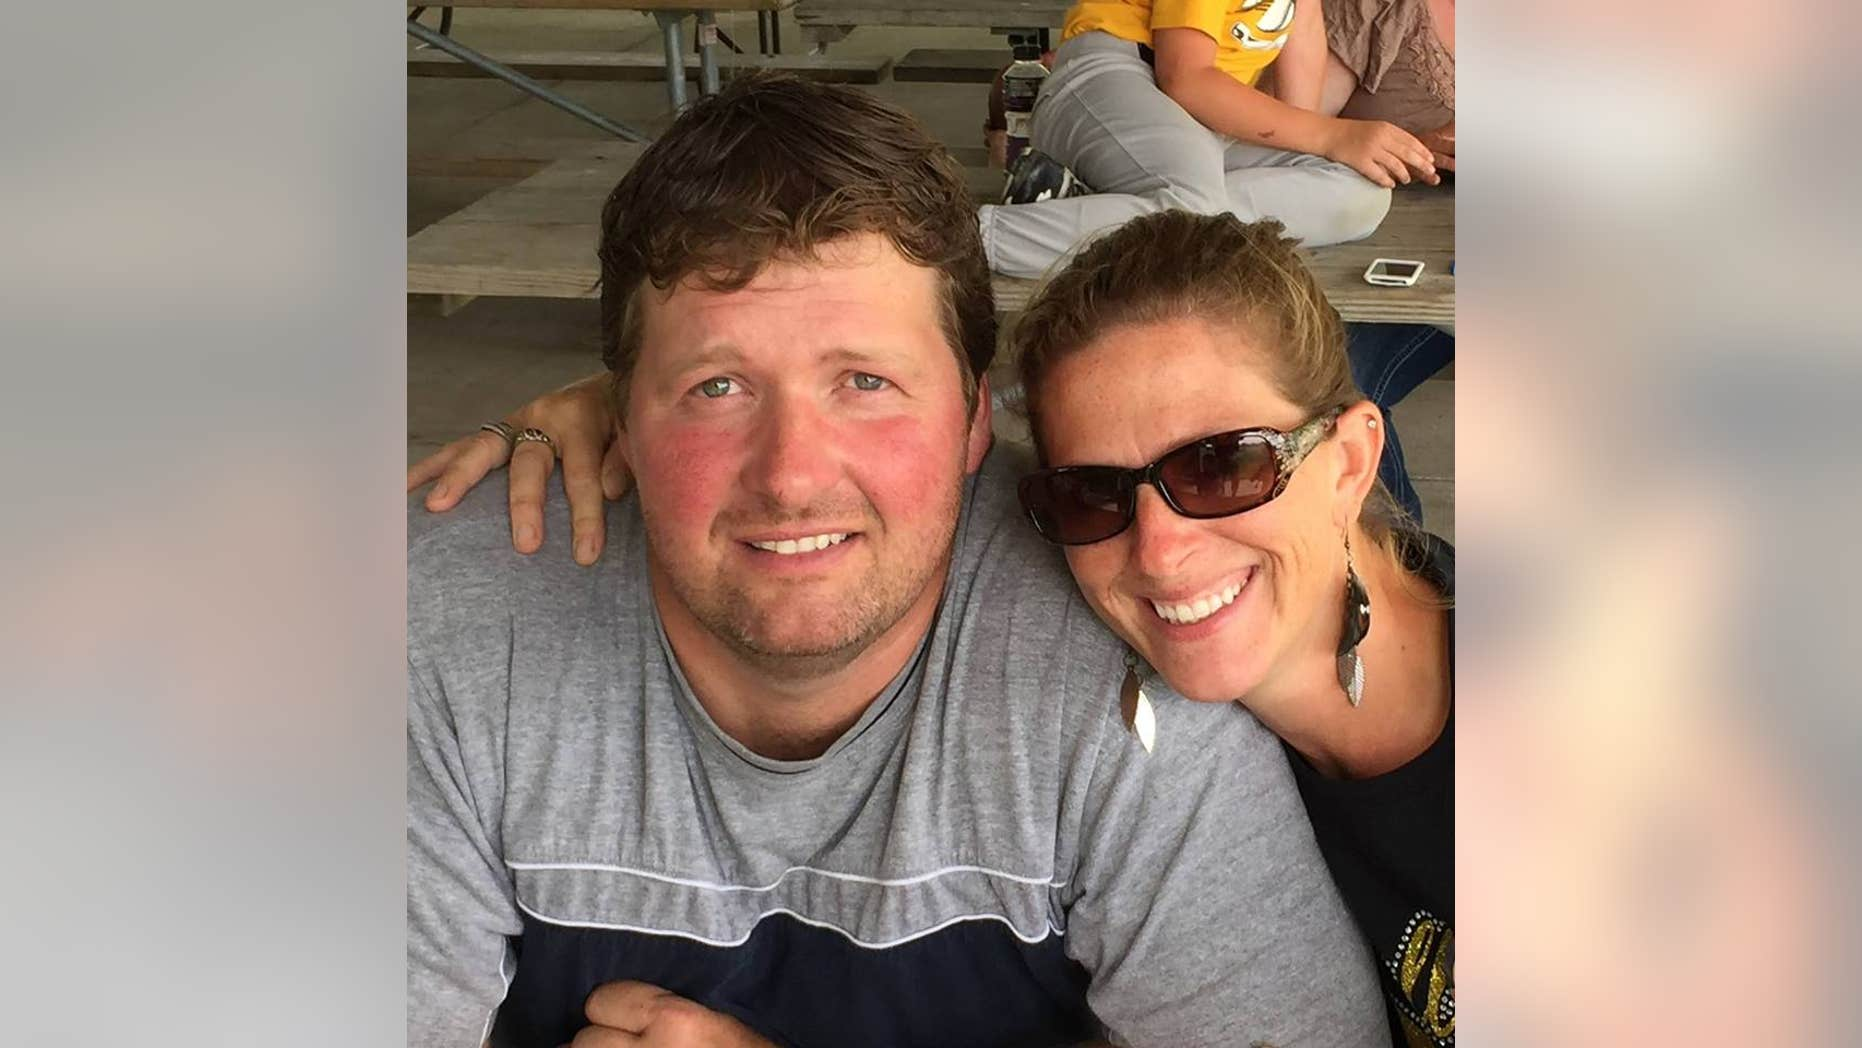 Todd Mullis and Amy Mullis in a September 2016 photograph posted on social media.